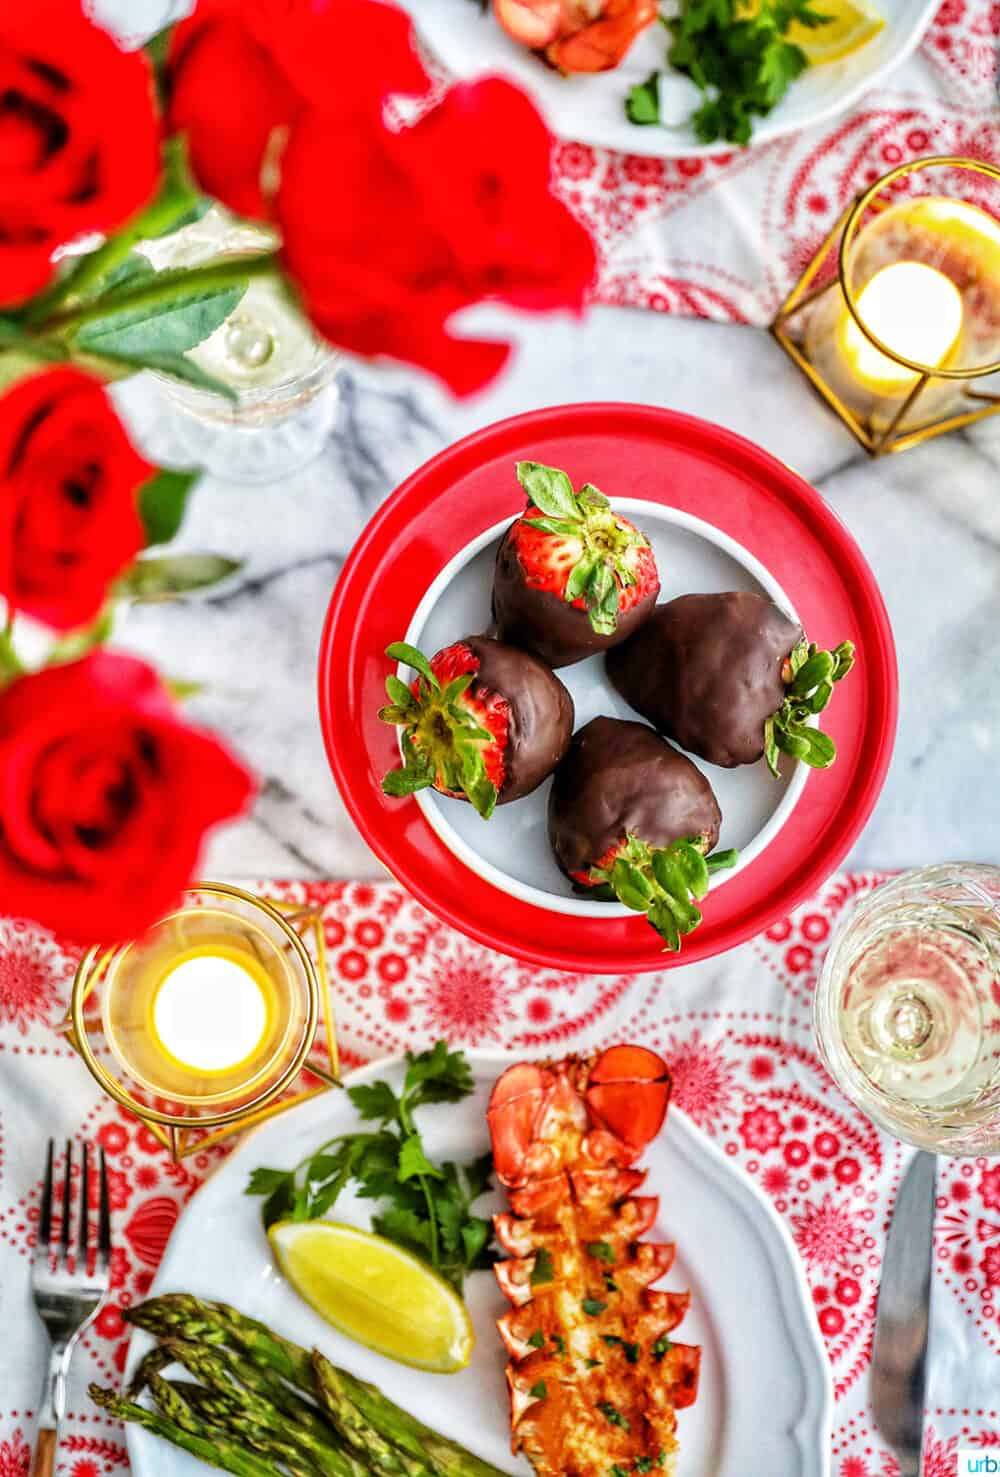 Valentine's Day dinner lobster chocolate covered strawberries roses candles wine